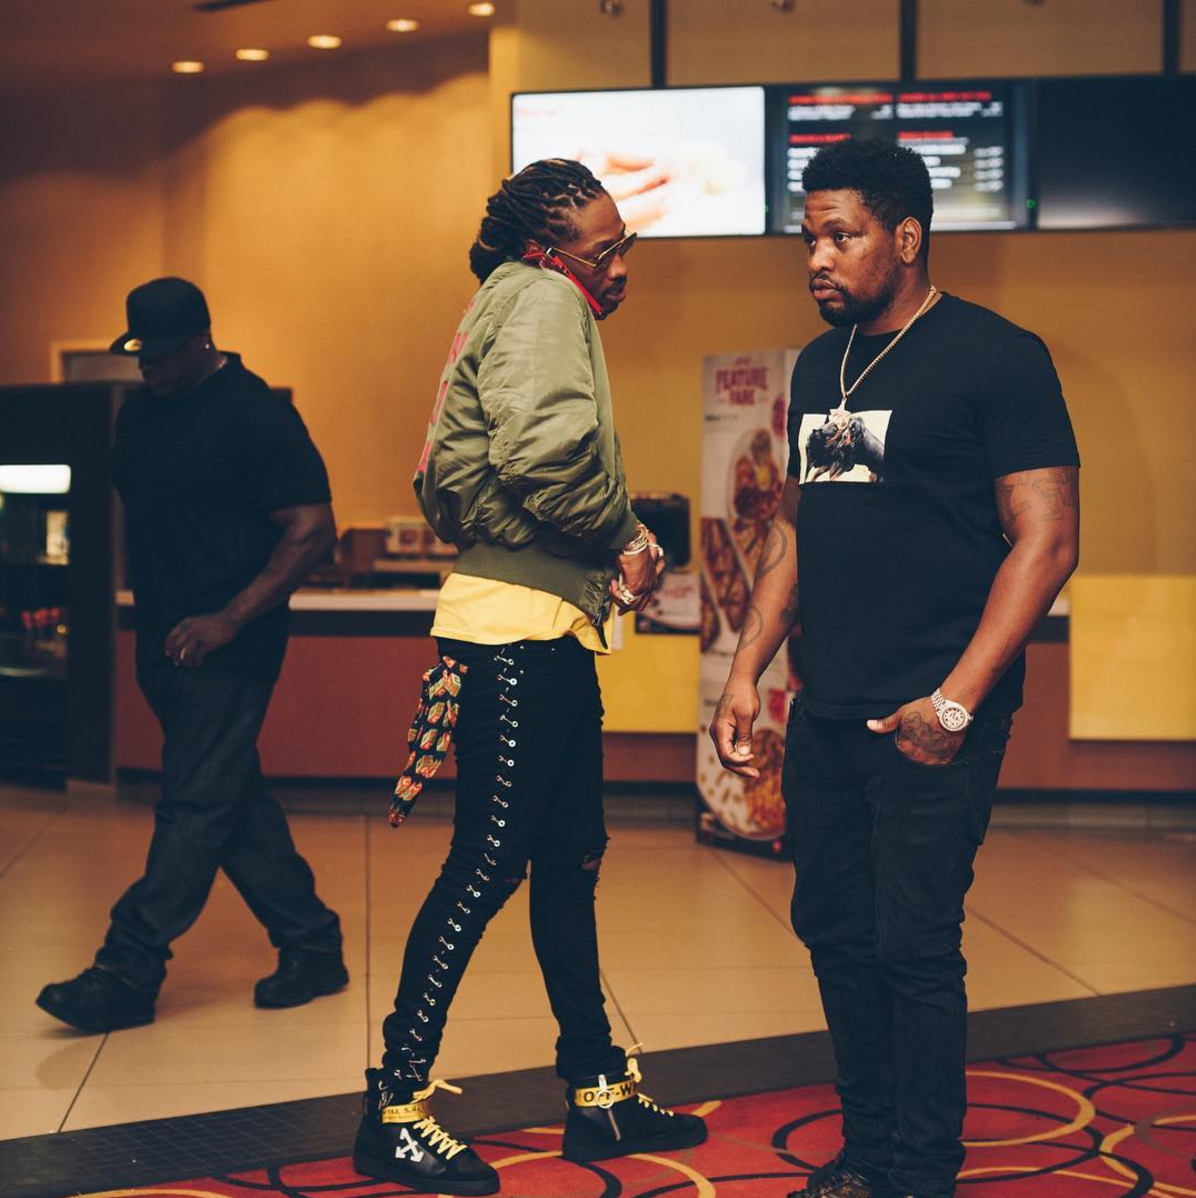 SPOTTED: Future in Anti Social Social Club & OFF-WHITE Sneakers